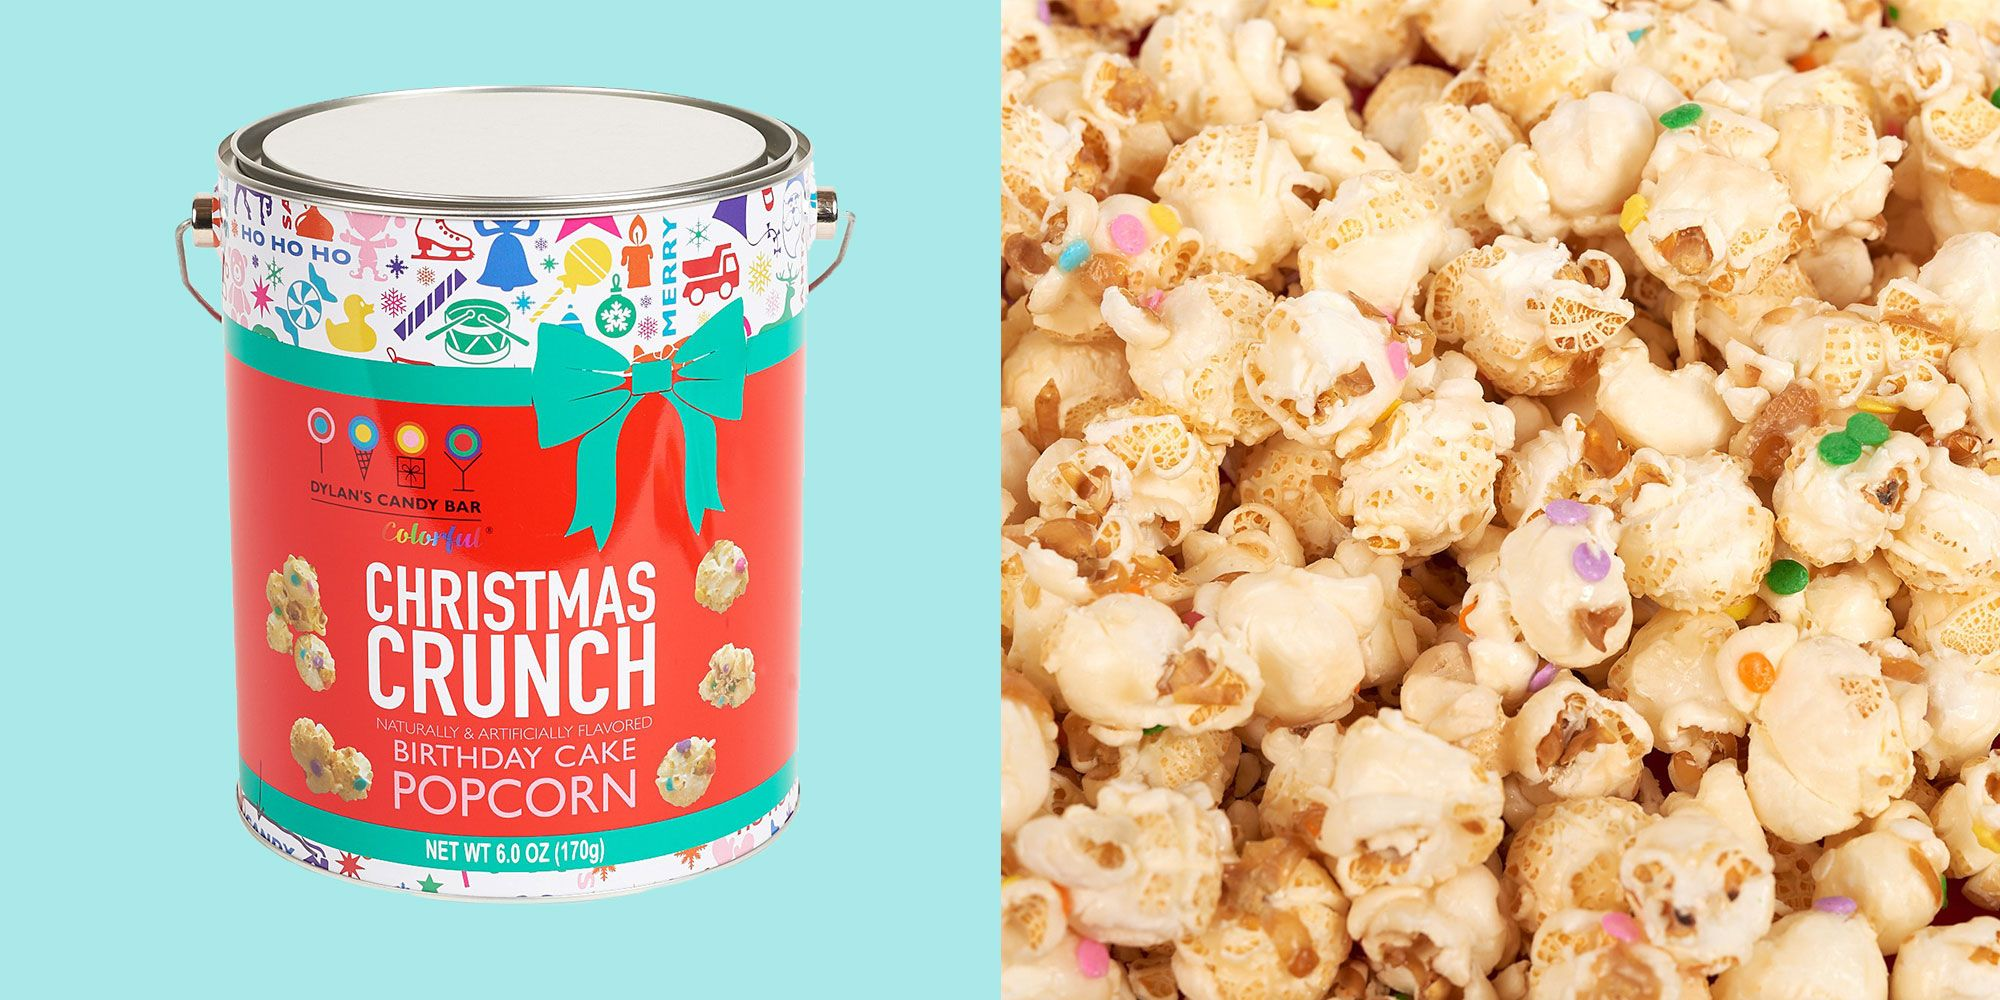 Targets New Dylans Candy Bar Christmas Crunch Birthday Cake Popcorn